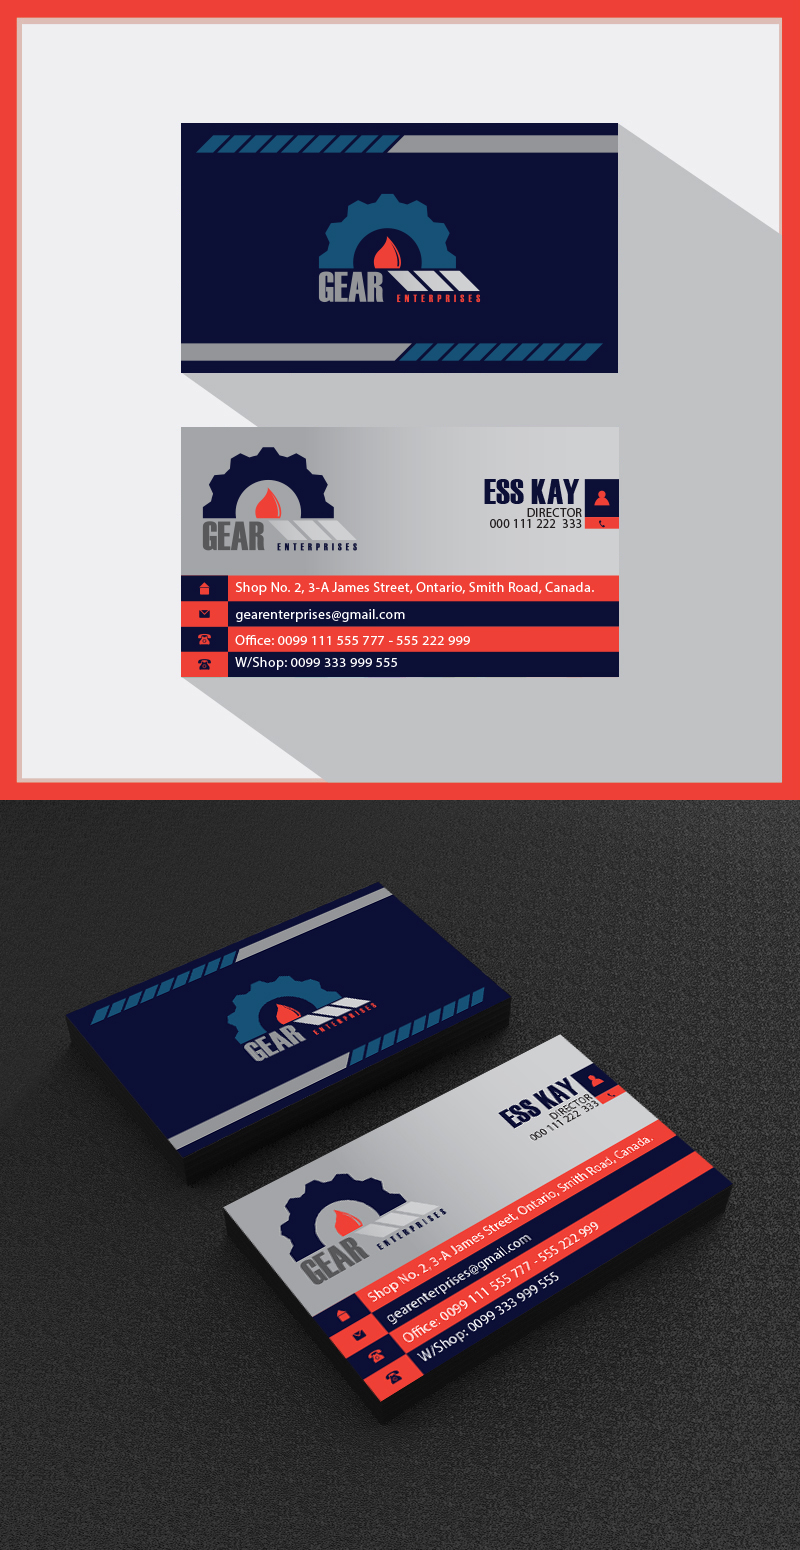 60 business card template designs collection a graphic world business card template design for engineering company cheaphphosting Image collections